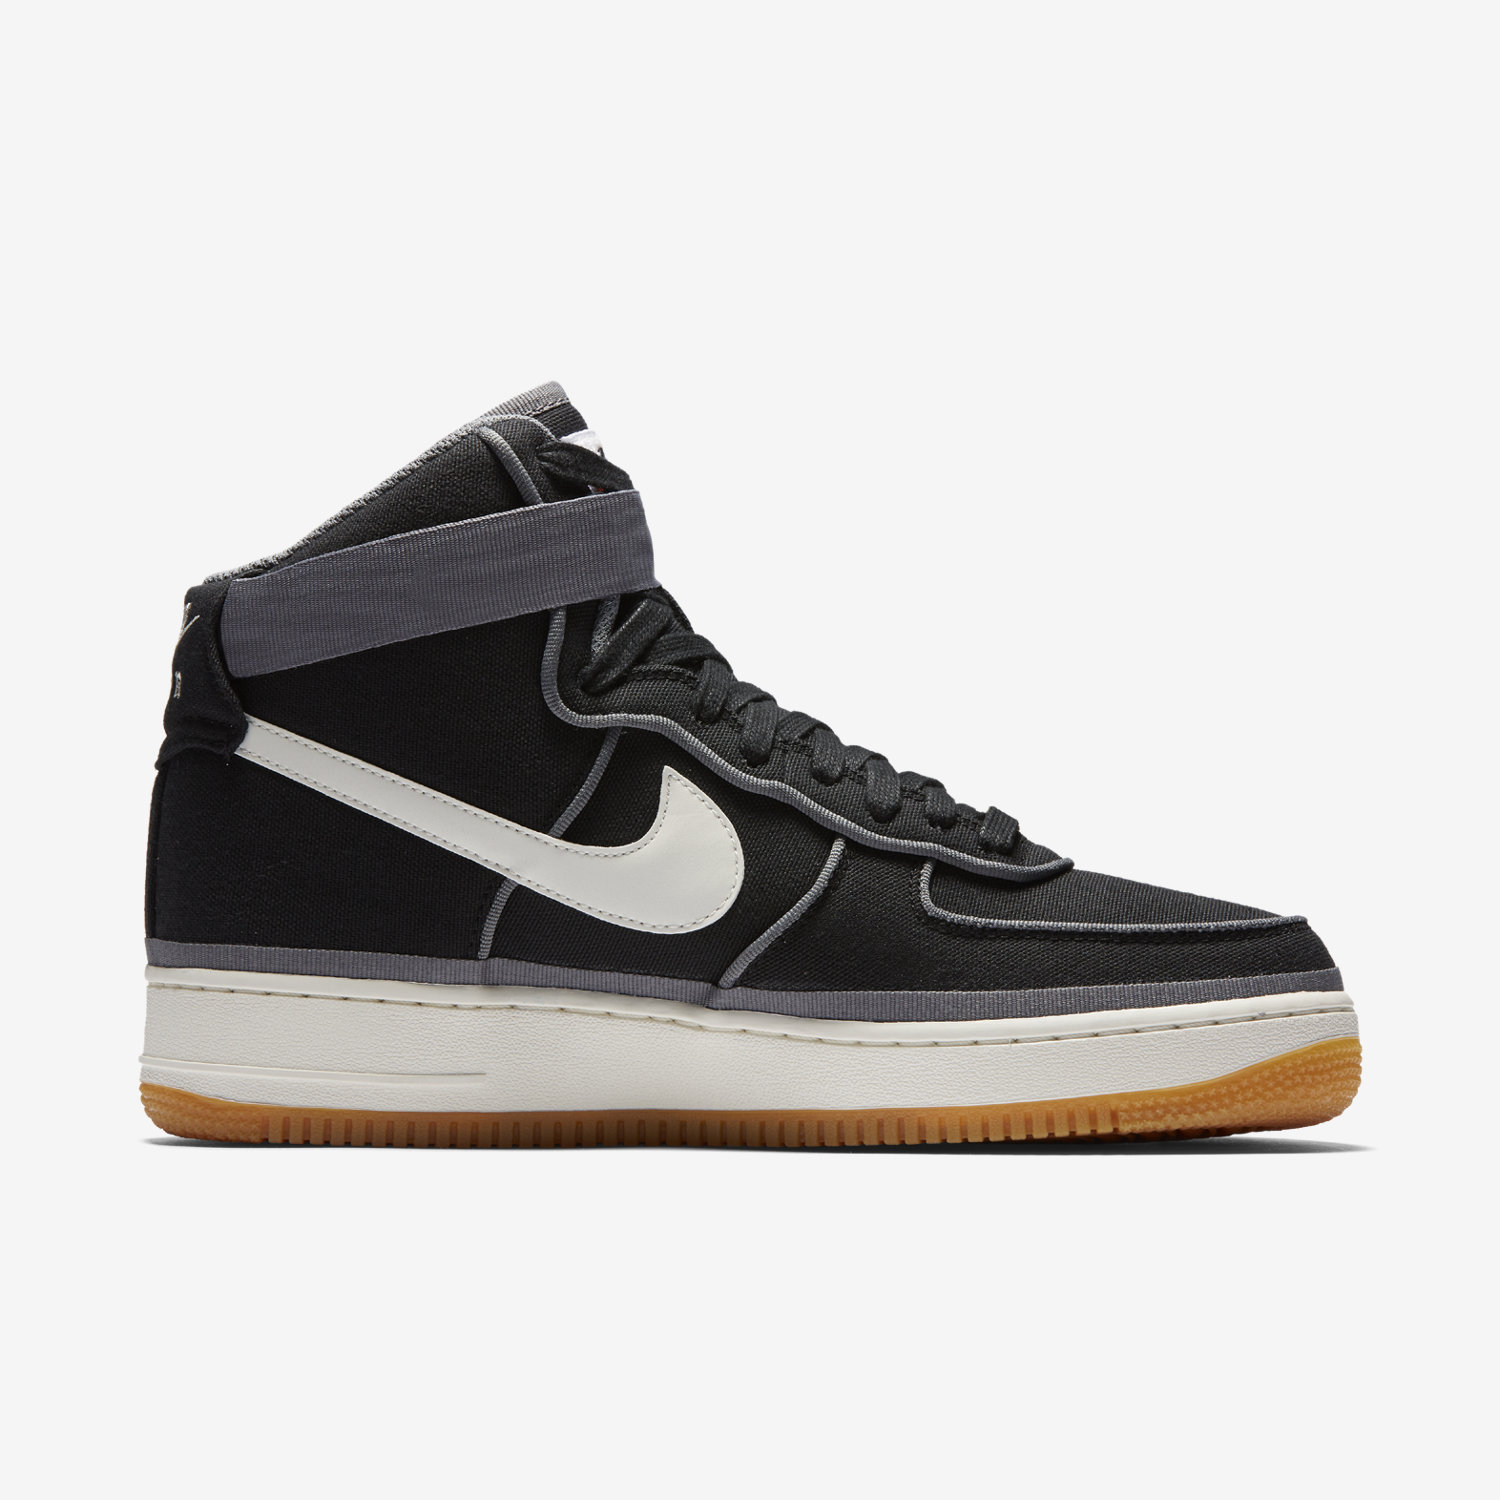 air force 1 07 high nike shoes and accessories. Black Bedroom Furniture Sets. Home Design Ideas